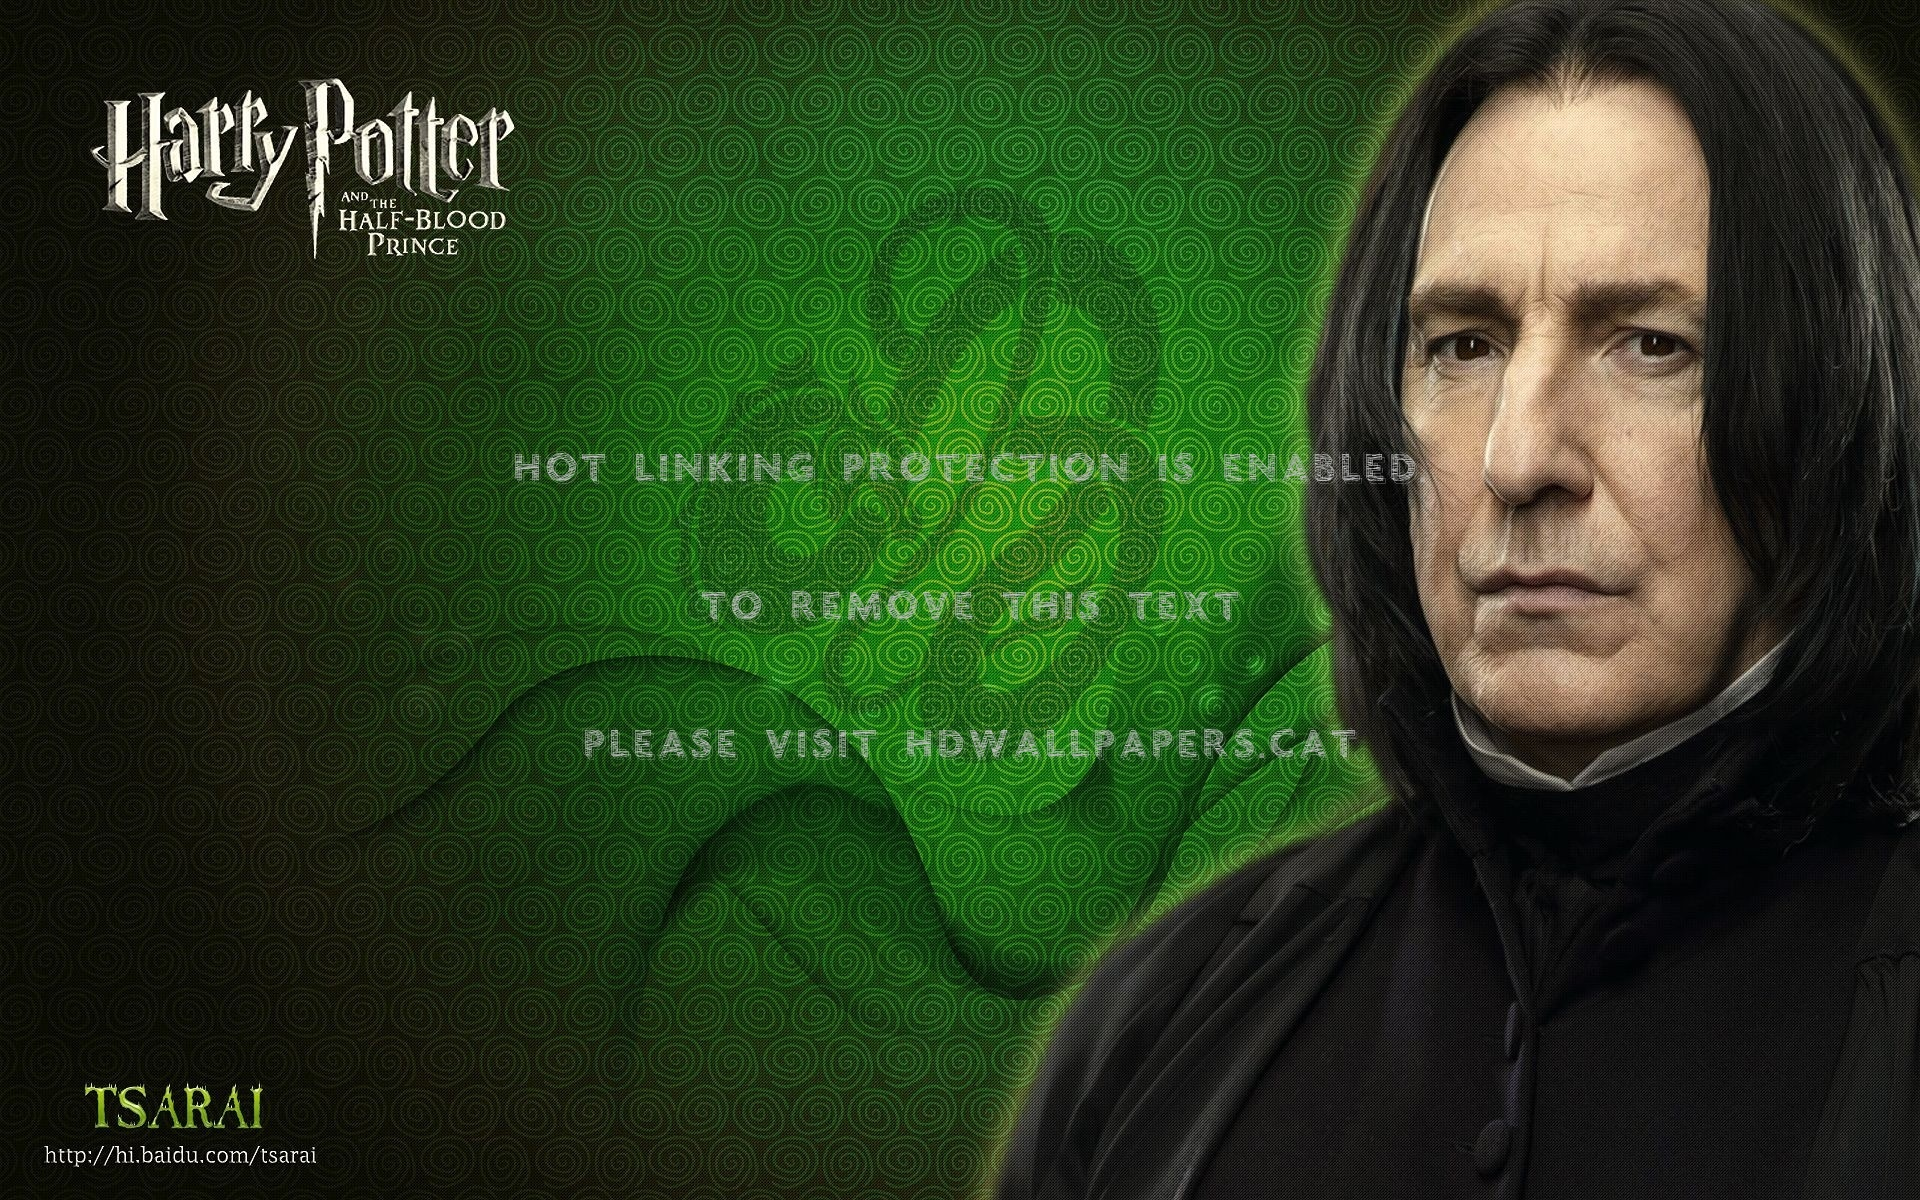 Severus Snape Dg Fe Wer Htr Fsf People - Harry Potter And The Deathly Hallows: Part Ii (2011) - HD Wallpaper